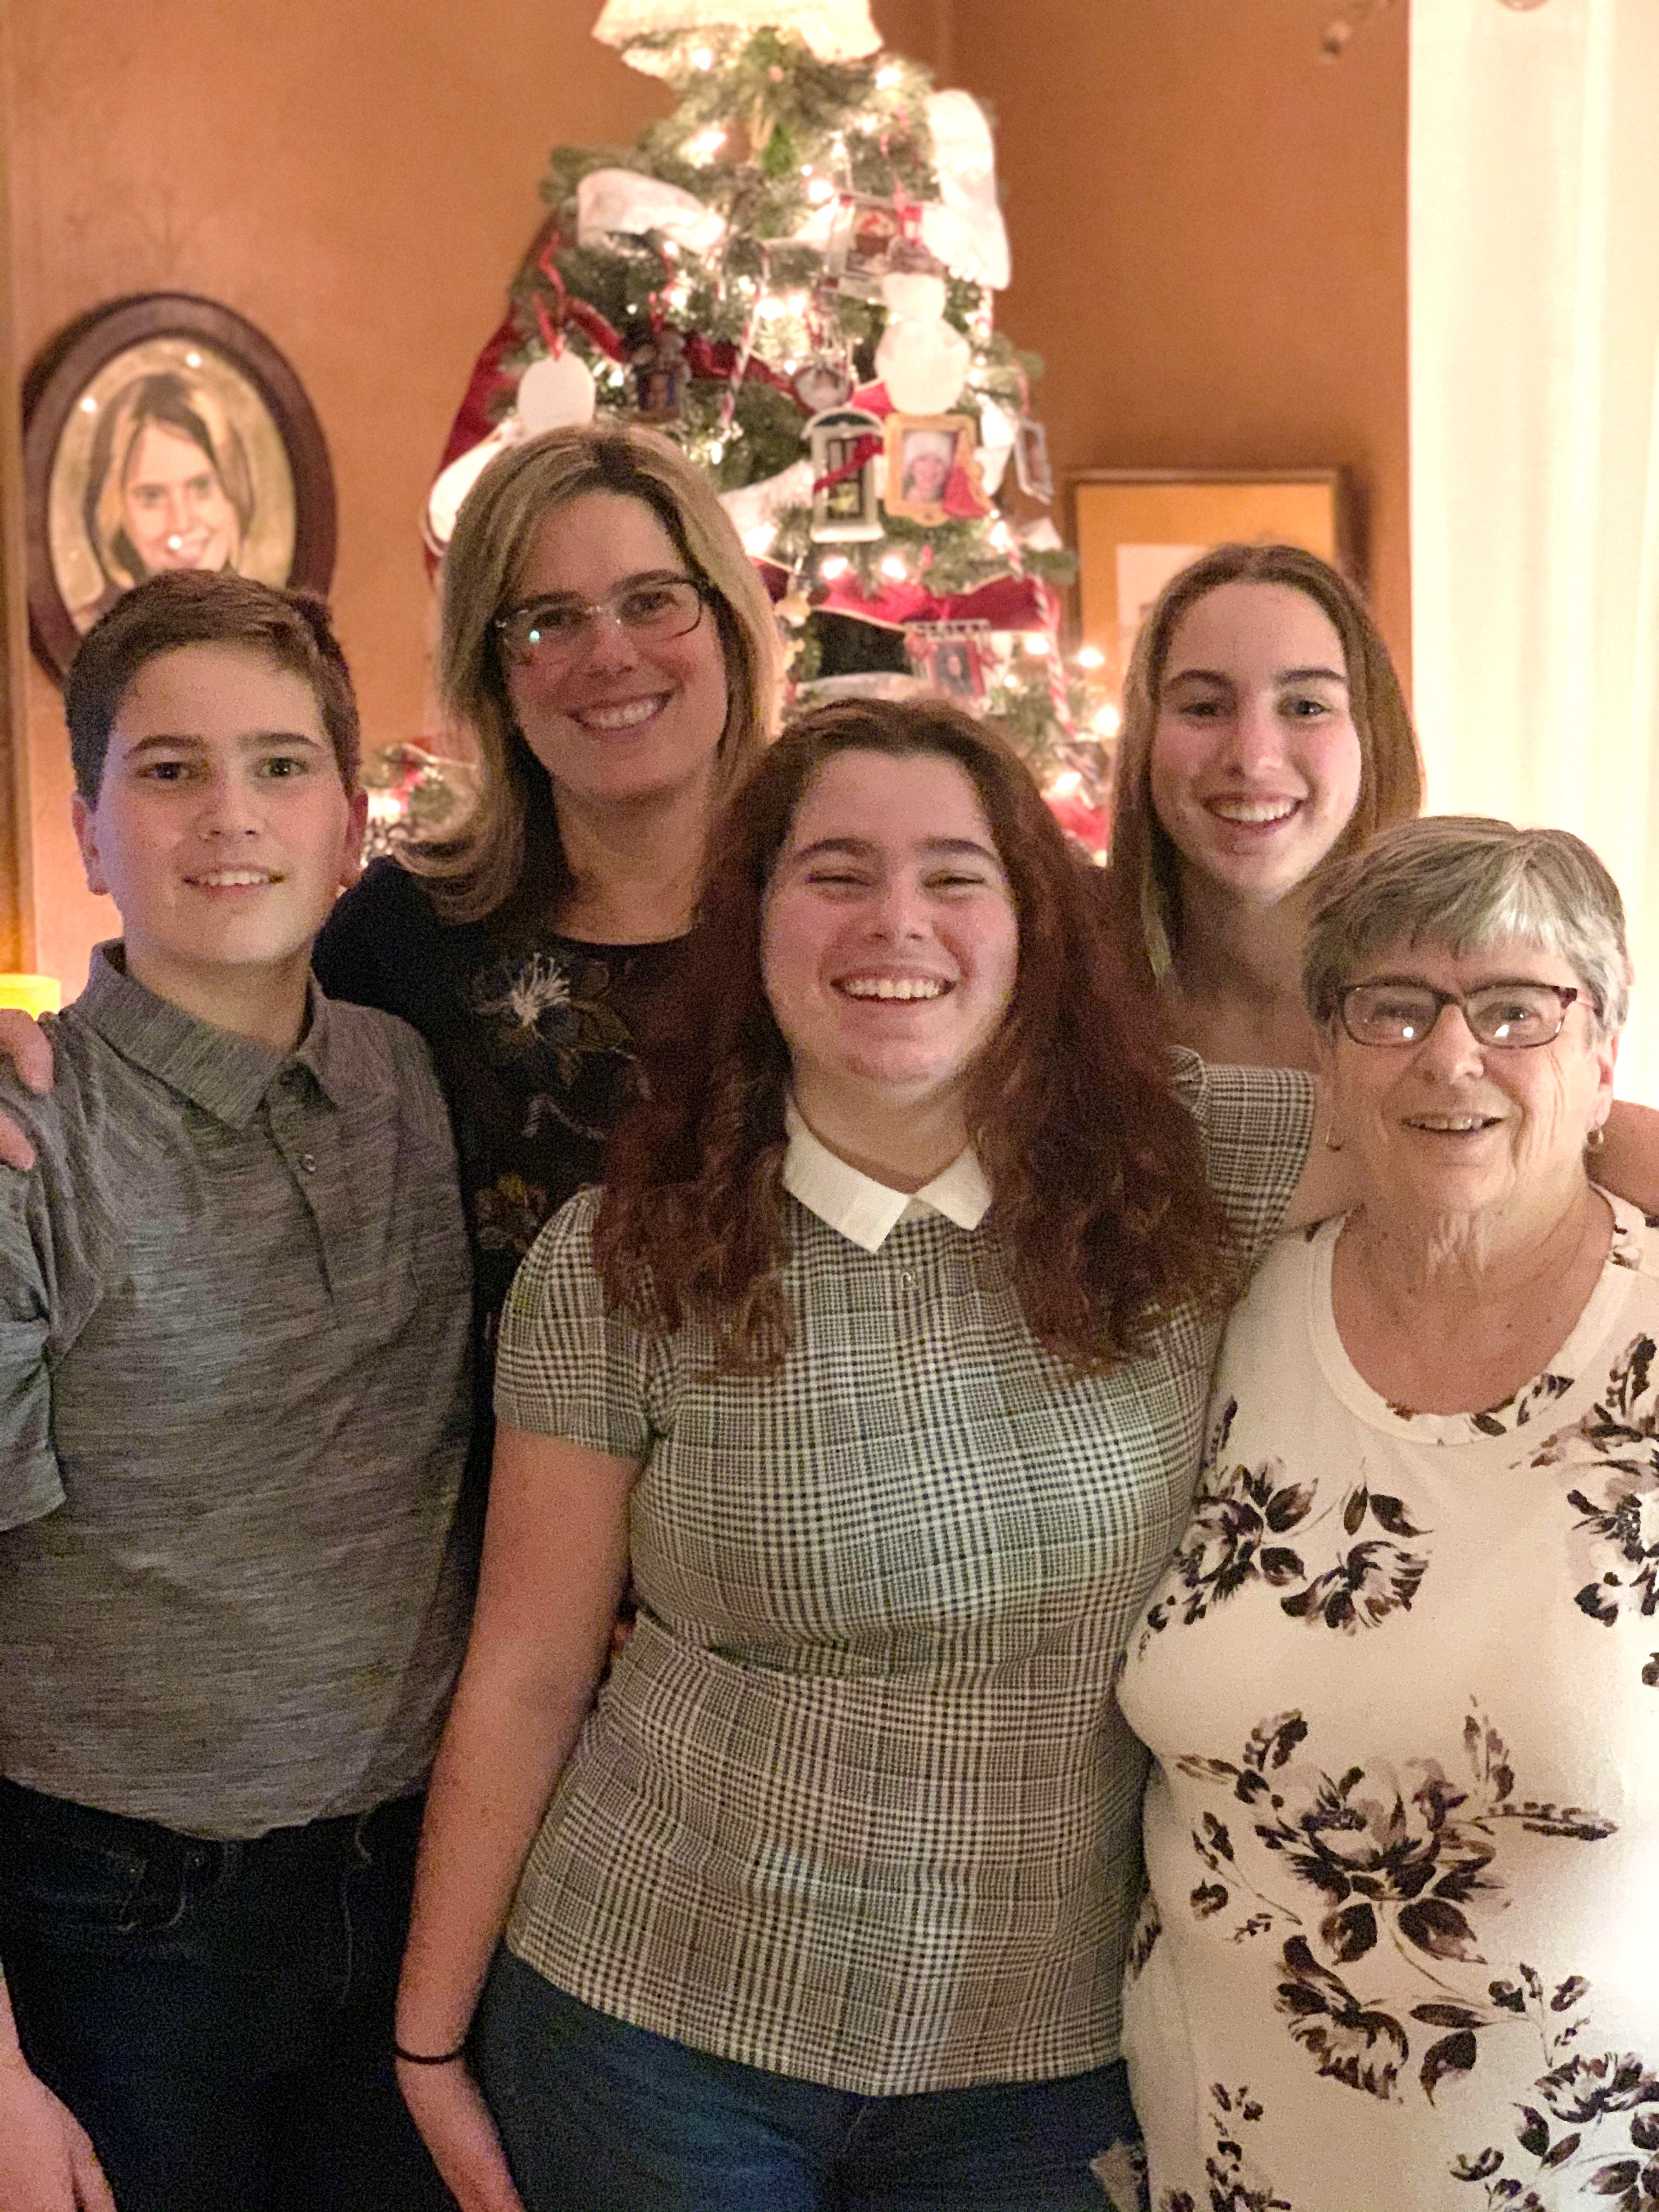 Claudette Cramm, right, stands with her daughter, Kimberley Studer, and her grandchildren, back row Séamus and Deirdre, and front row Aisling.